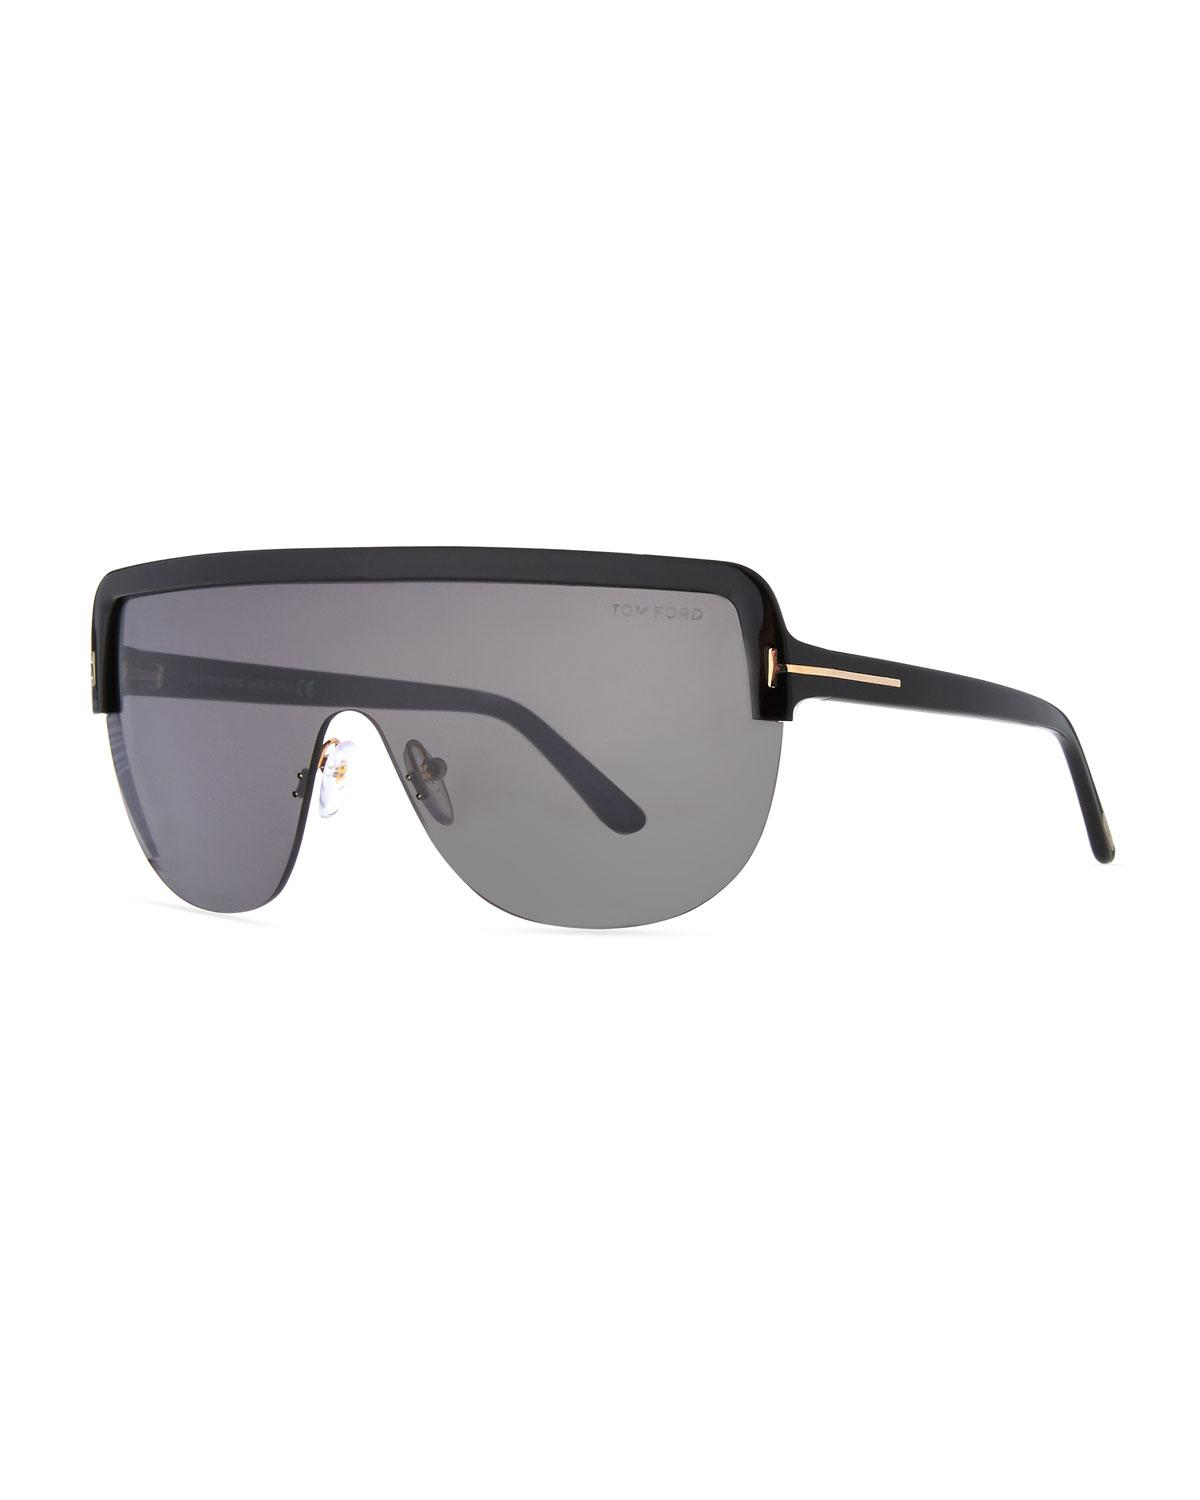 093c007108f5 Tom Ford River Clubmaster Sunglasses In Matte Black   Tort Lens G ...